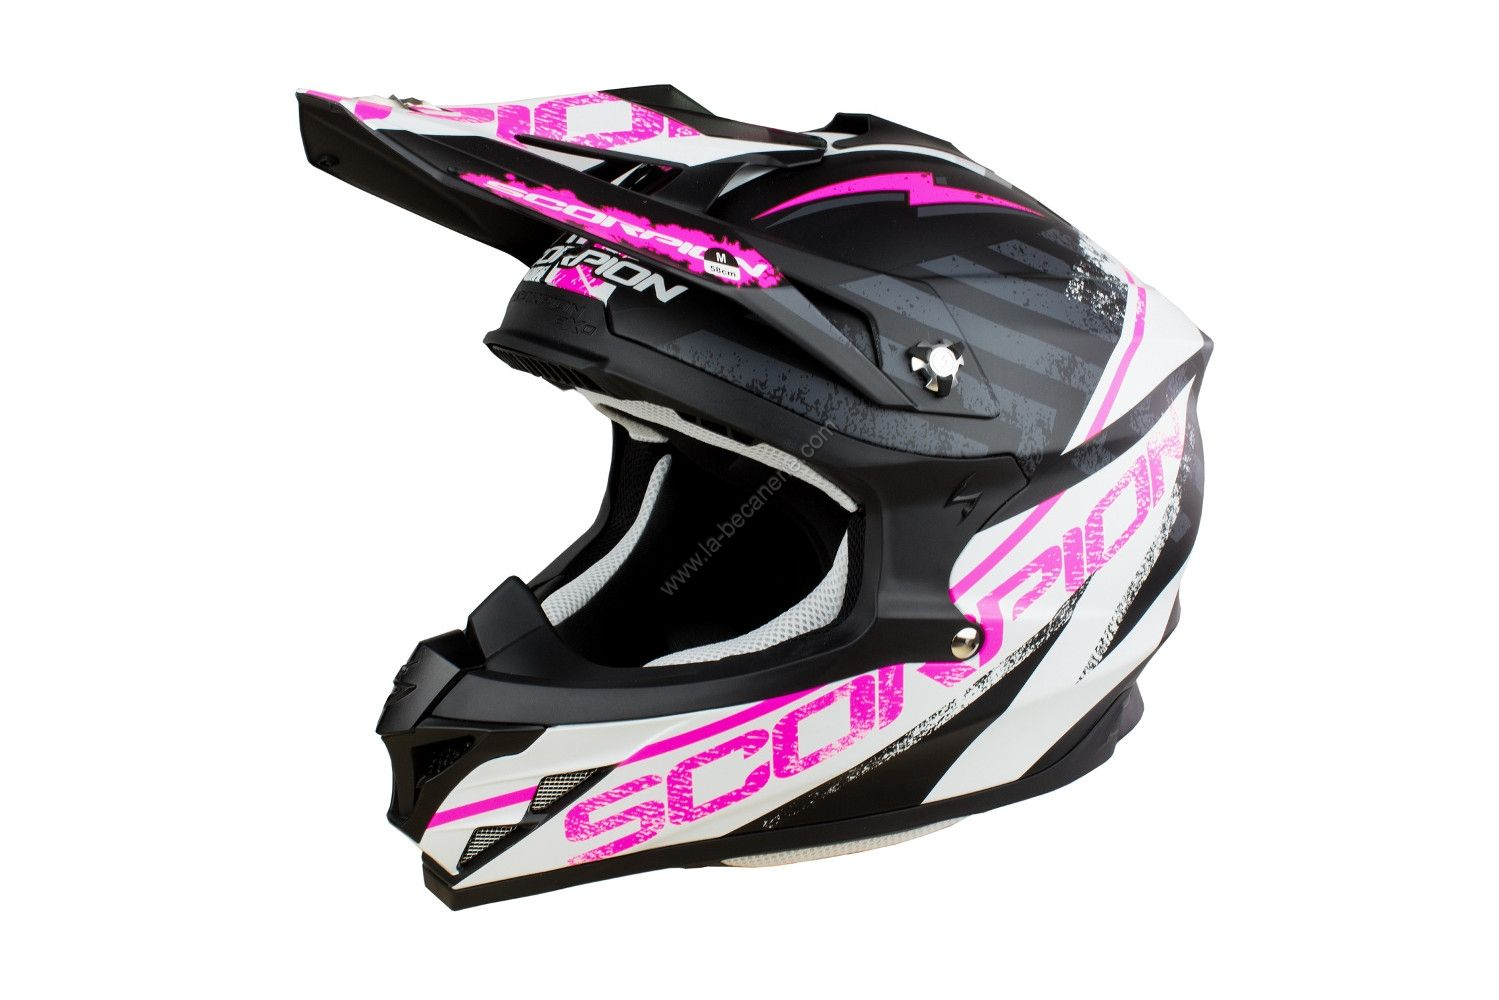 casque cross vente de casque motocross sur la b canerie. Black Bedroom Furniture Sets. Home Design Ideas